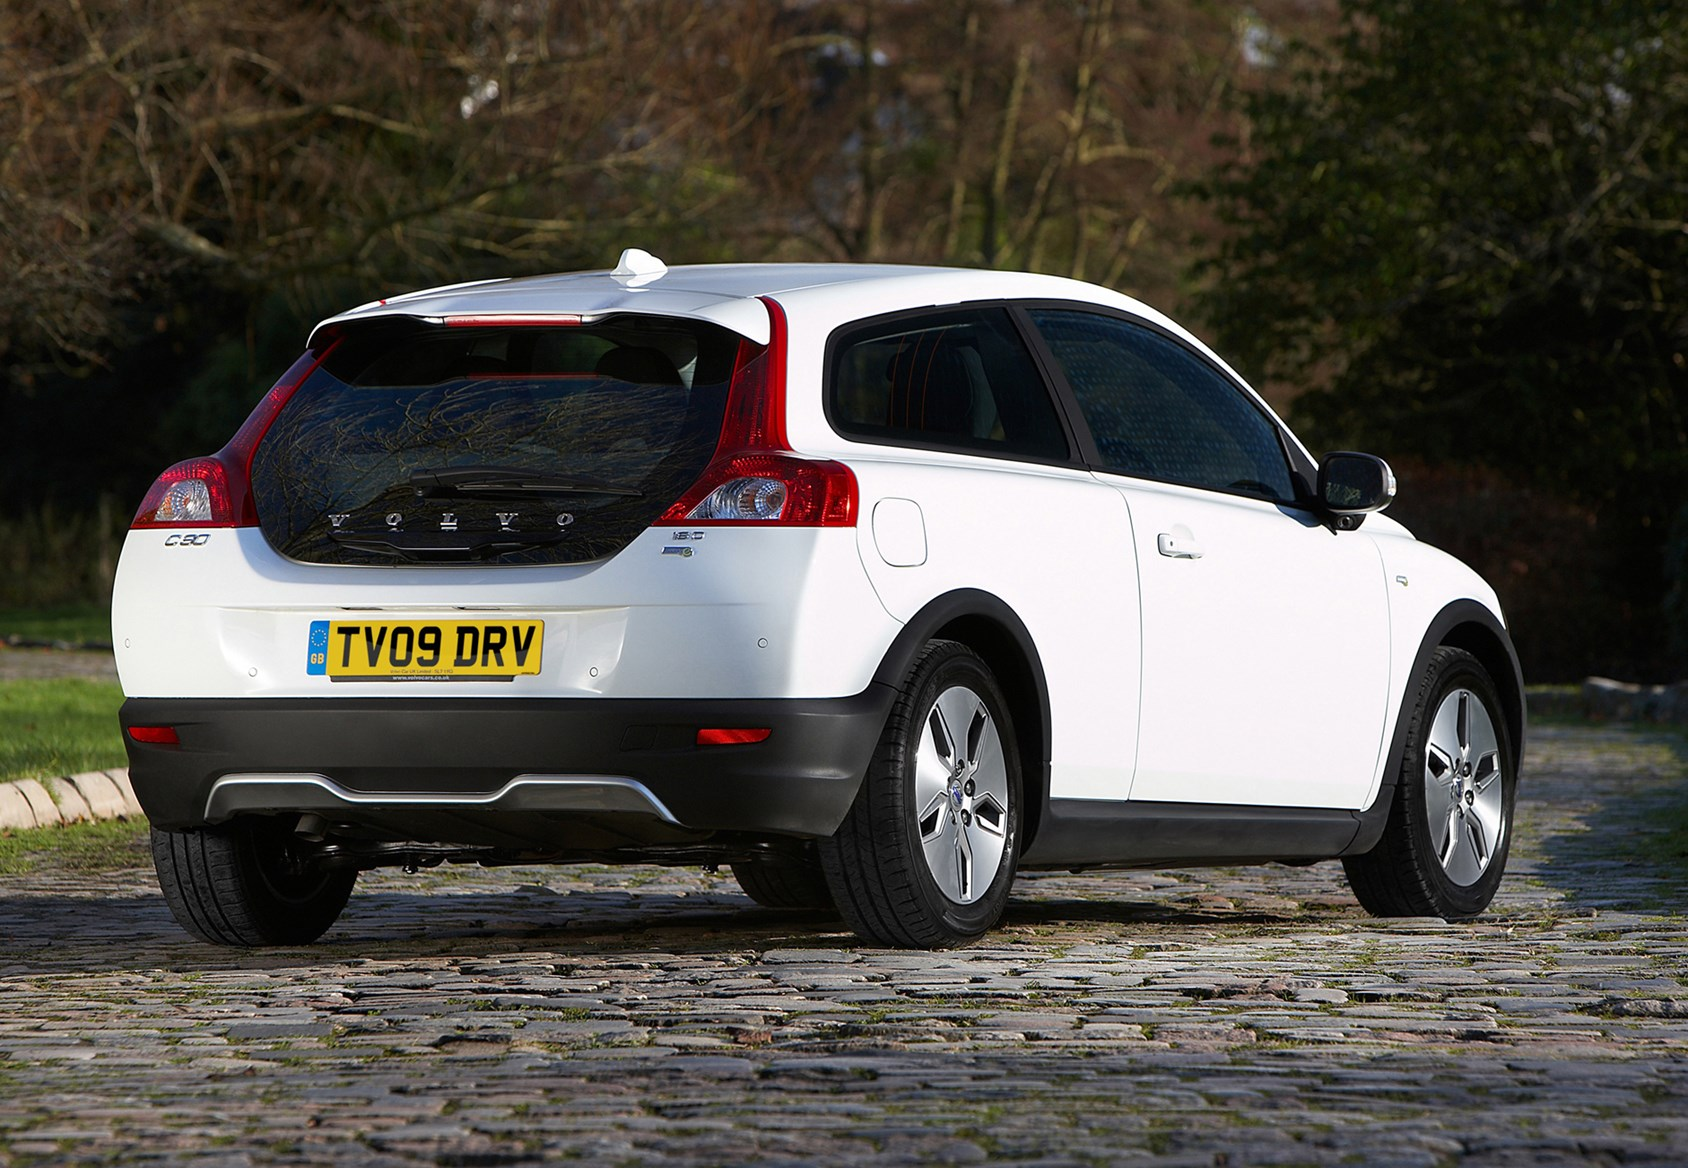 Volvo C30 For Sale >> Volvo C30 Coupe Review (2007 - 2012) | Parkers